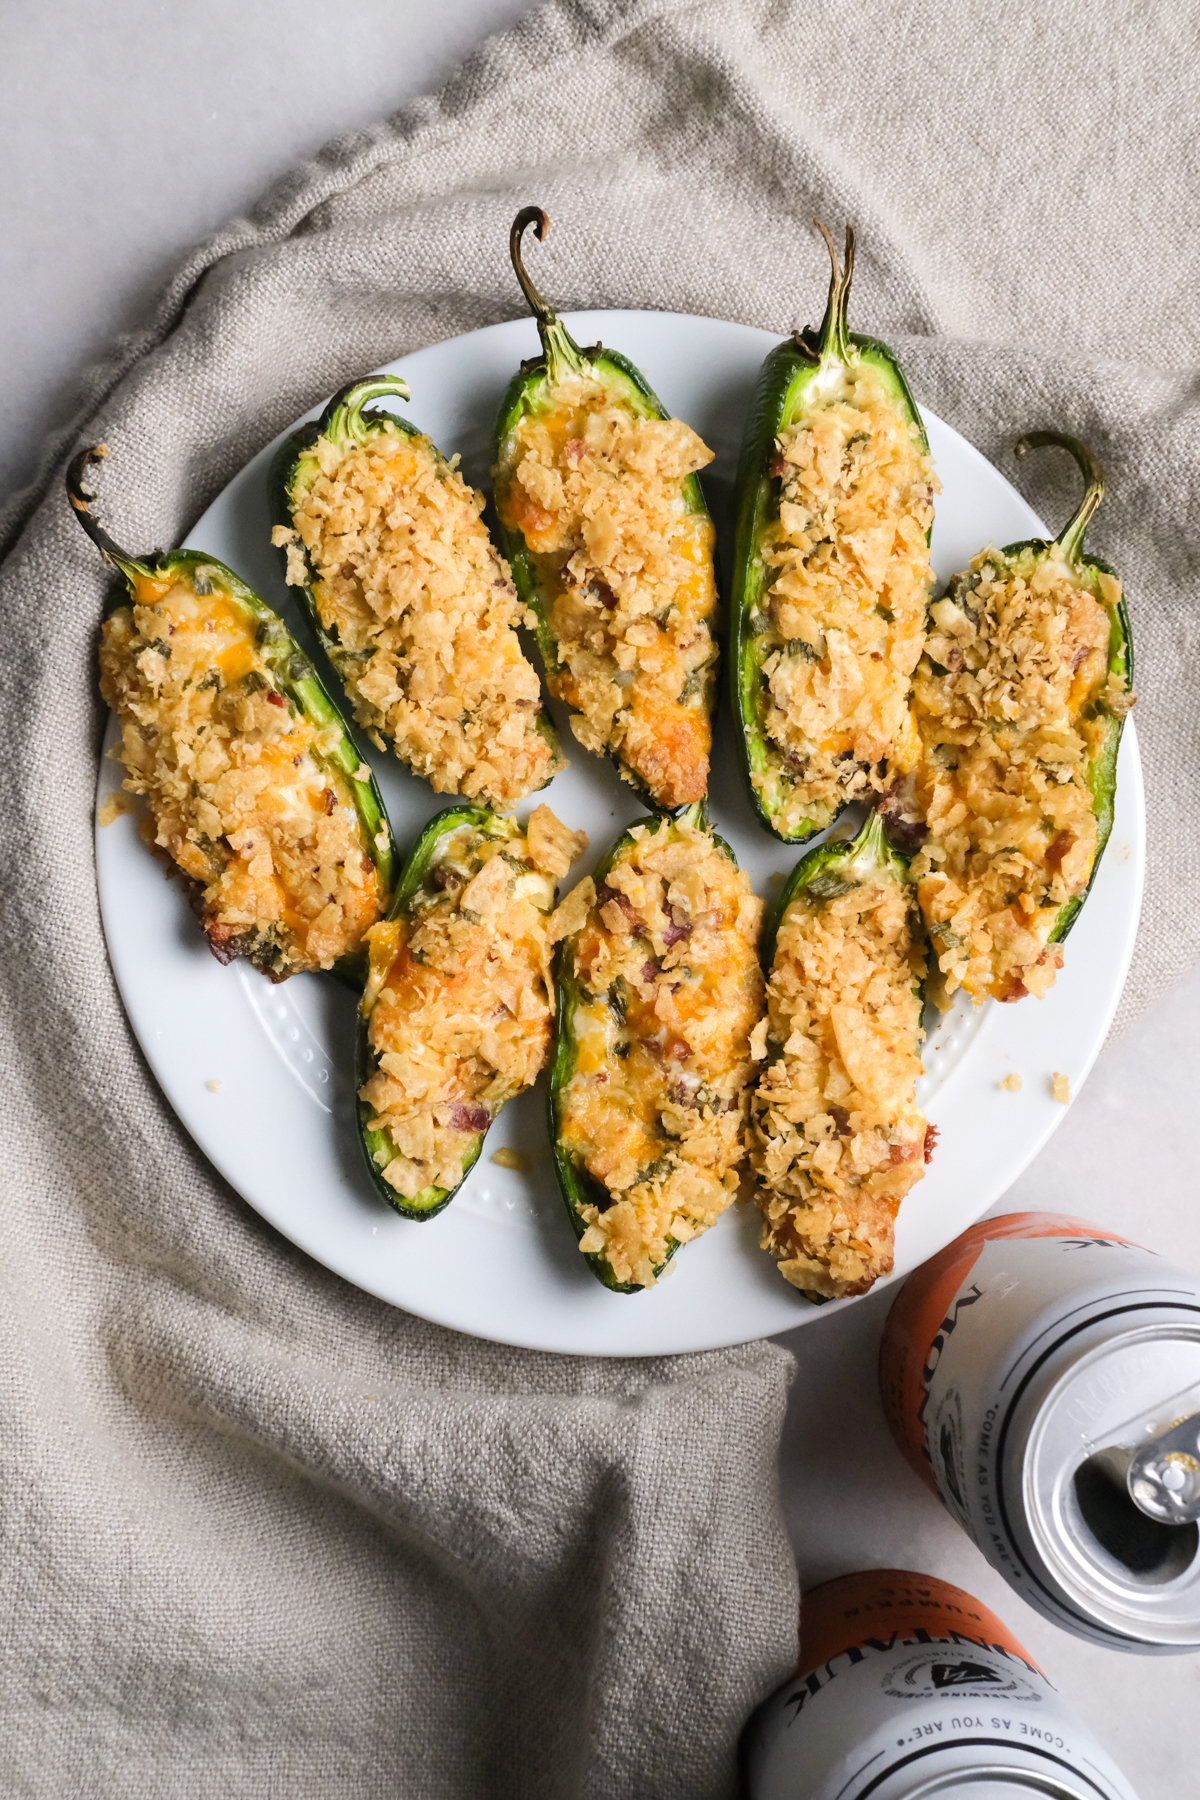 jalapeno poppers on a plate with crispy chip topping